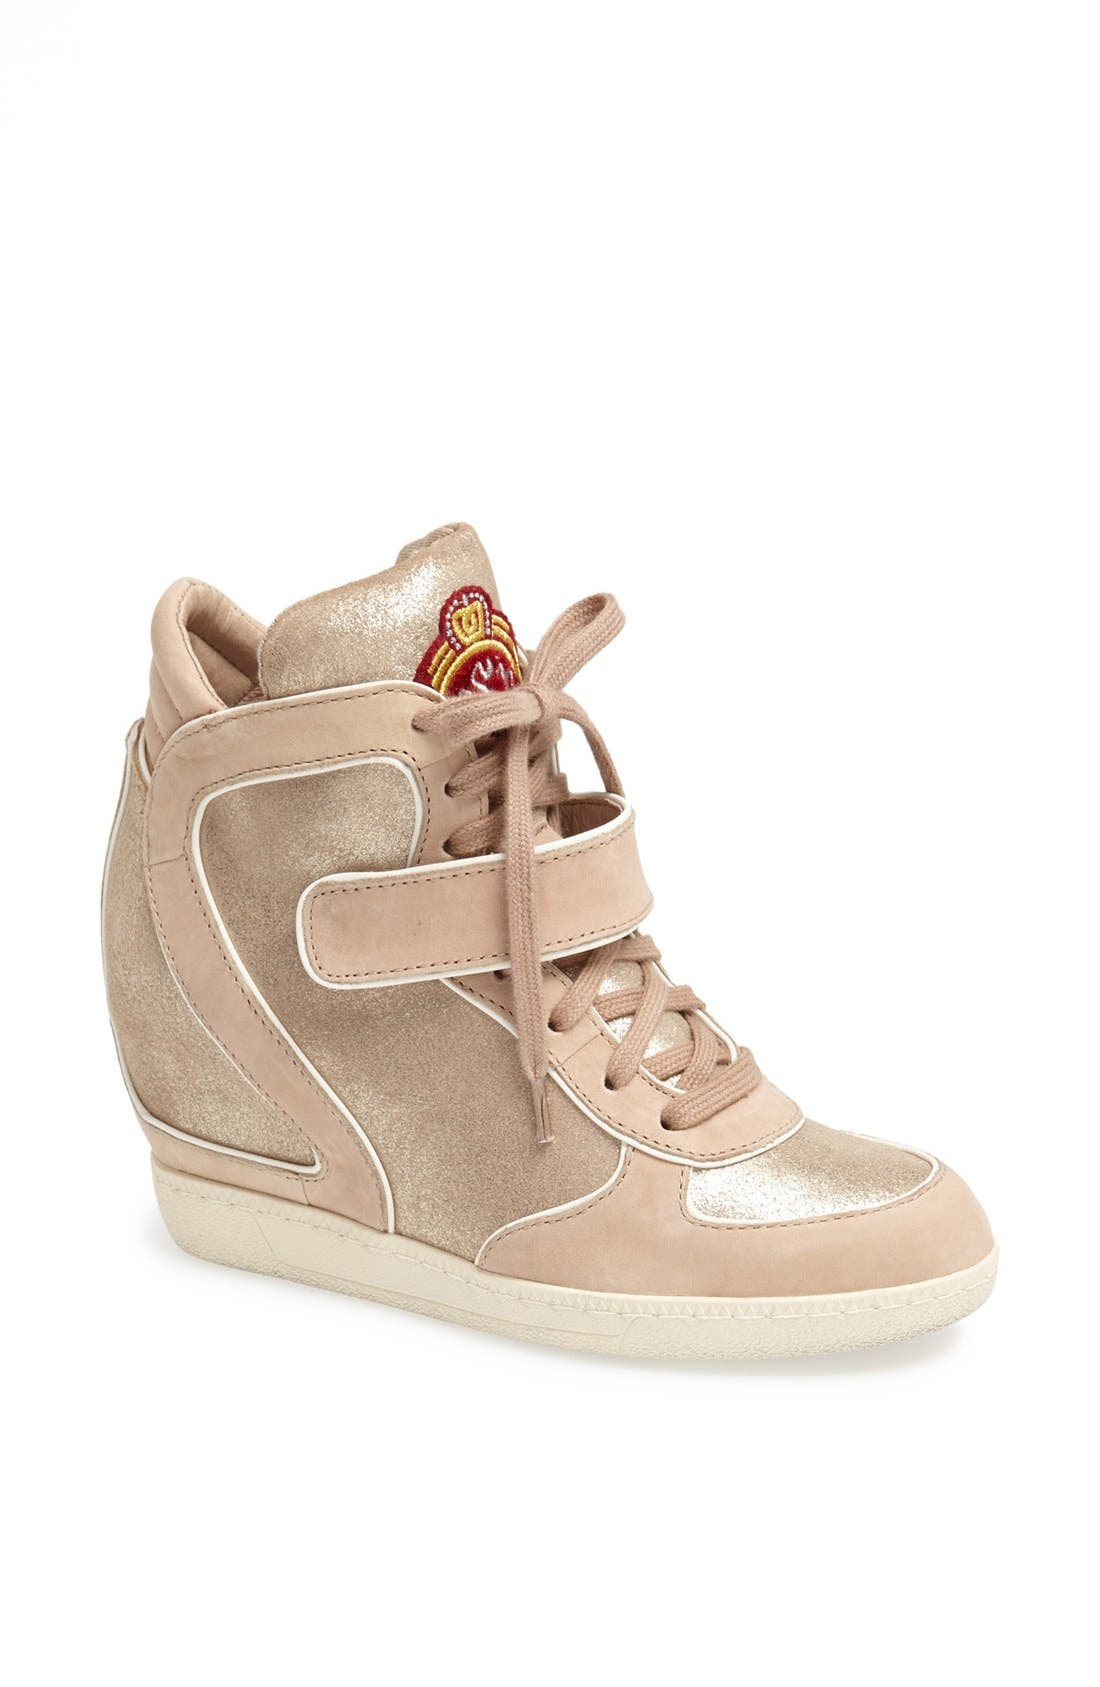 Main Image - Ash 'Brendy' Hidden Wedge Suede & Metallic Leather Sneaker